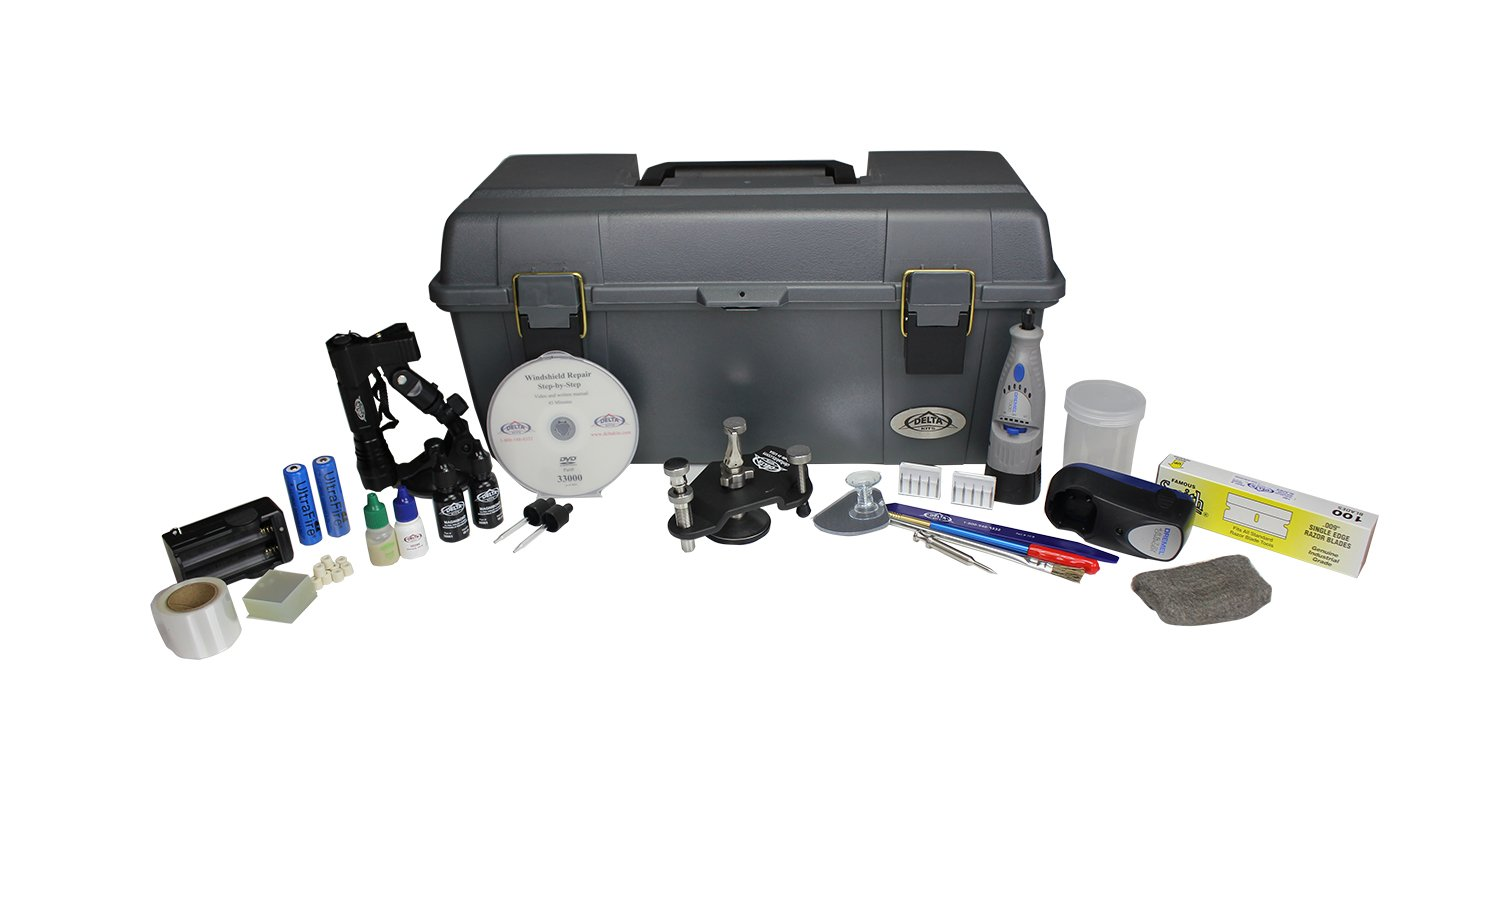 EZ-250S Mobile Windshield Repair System